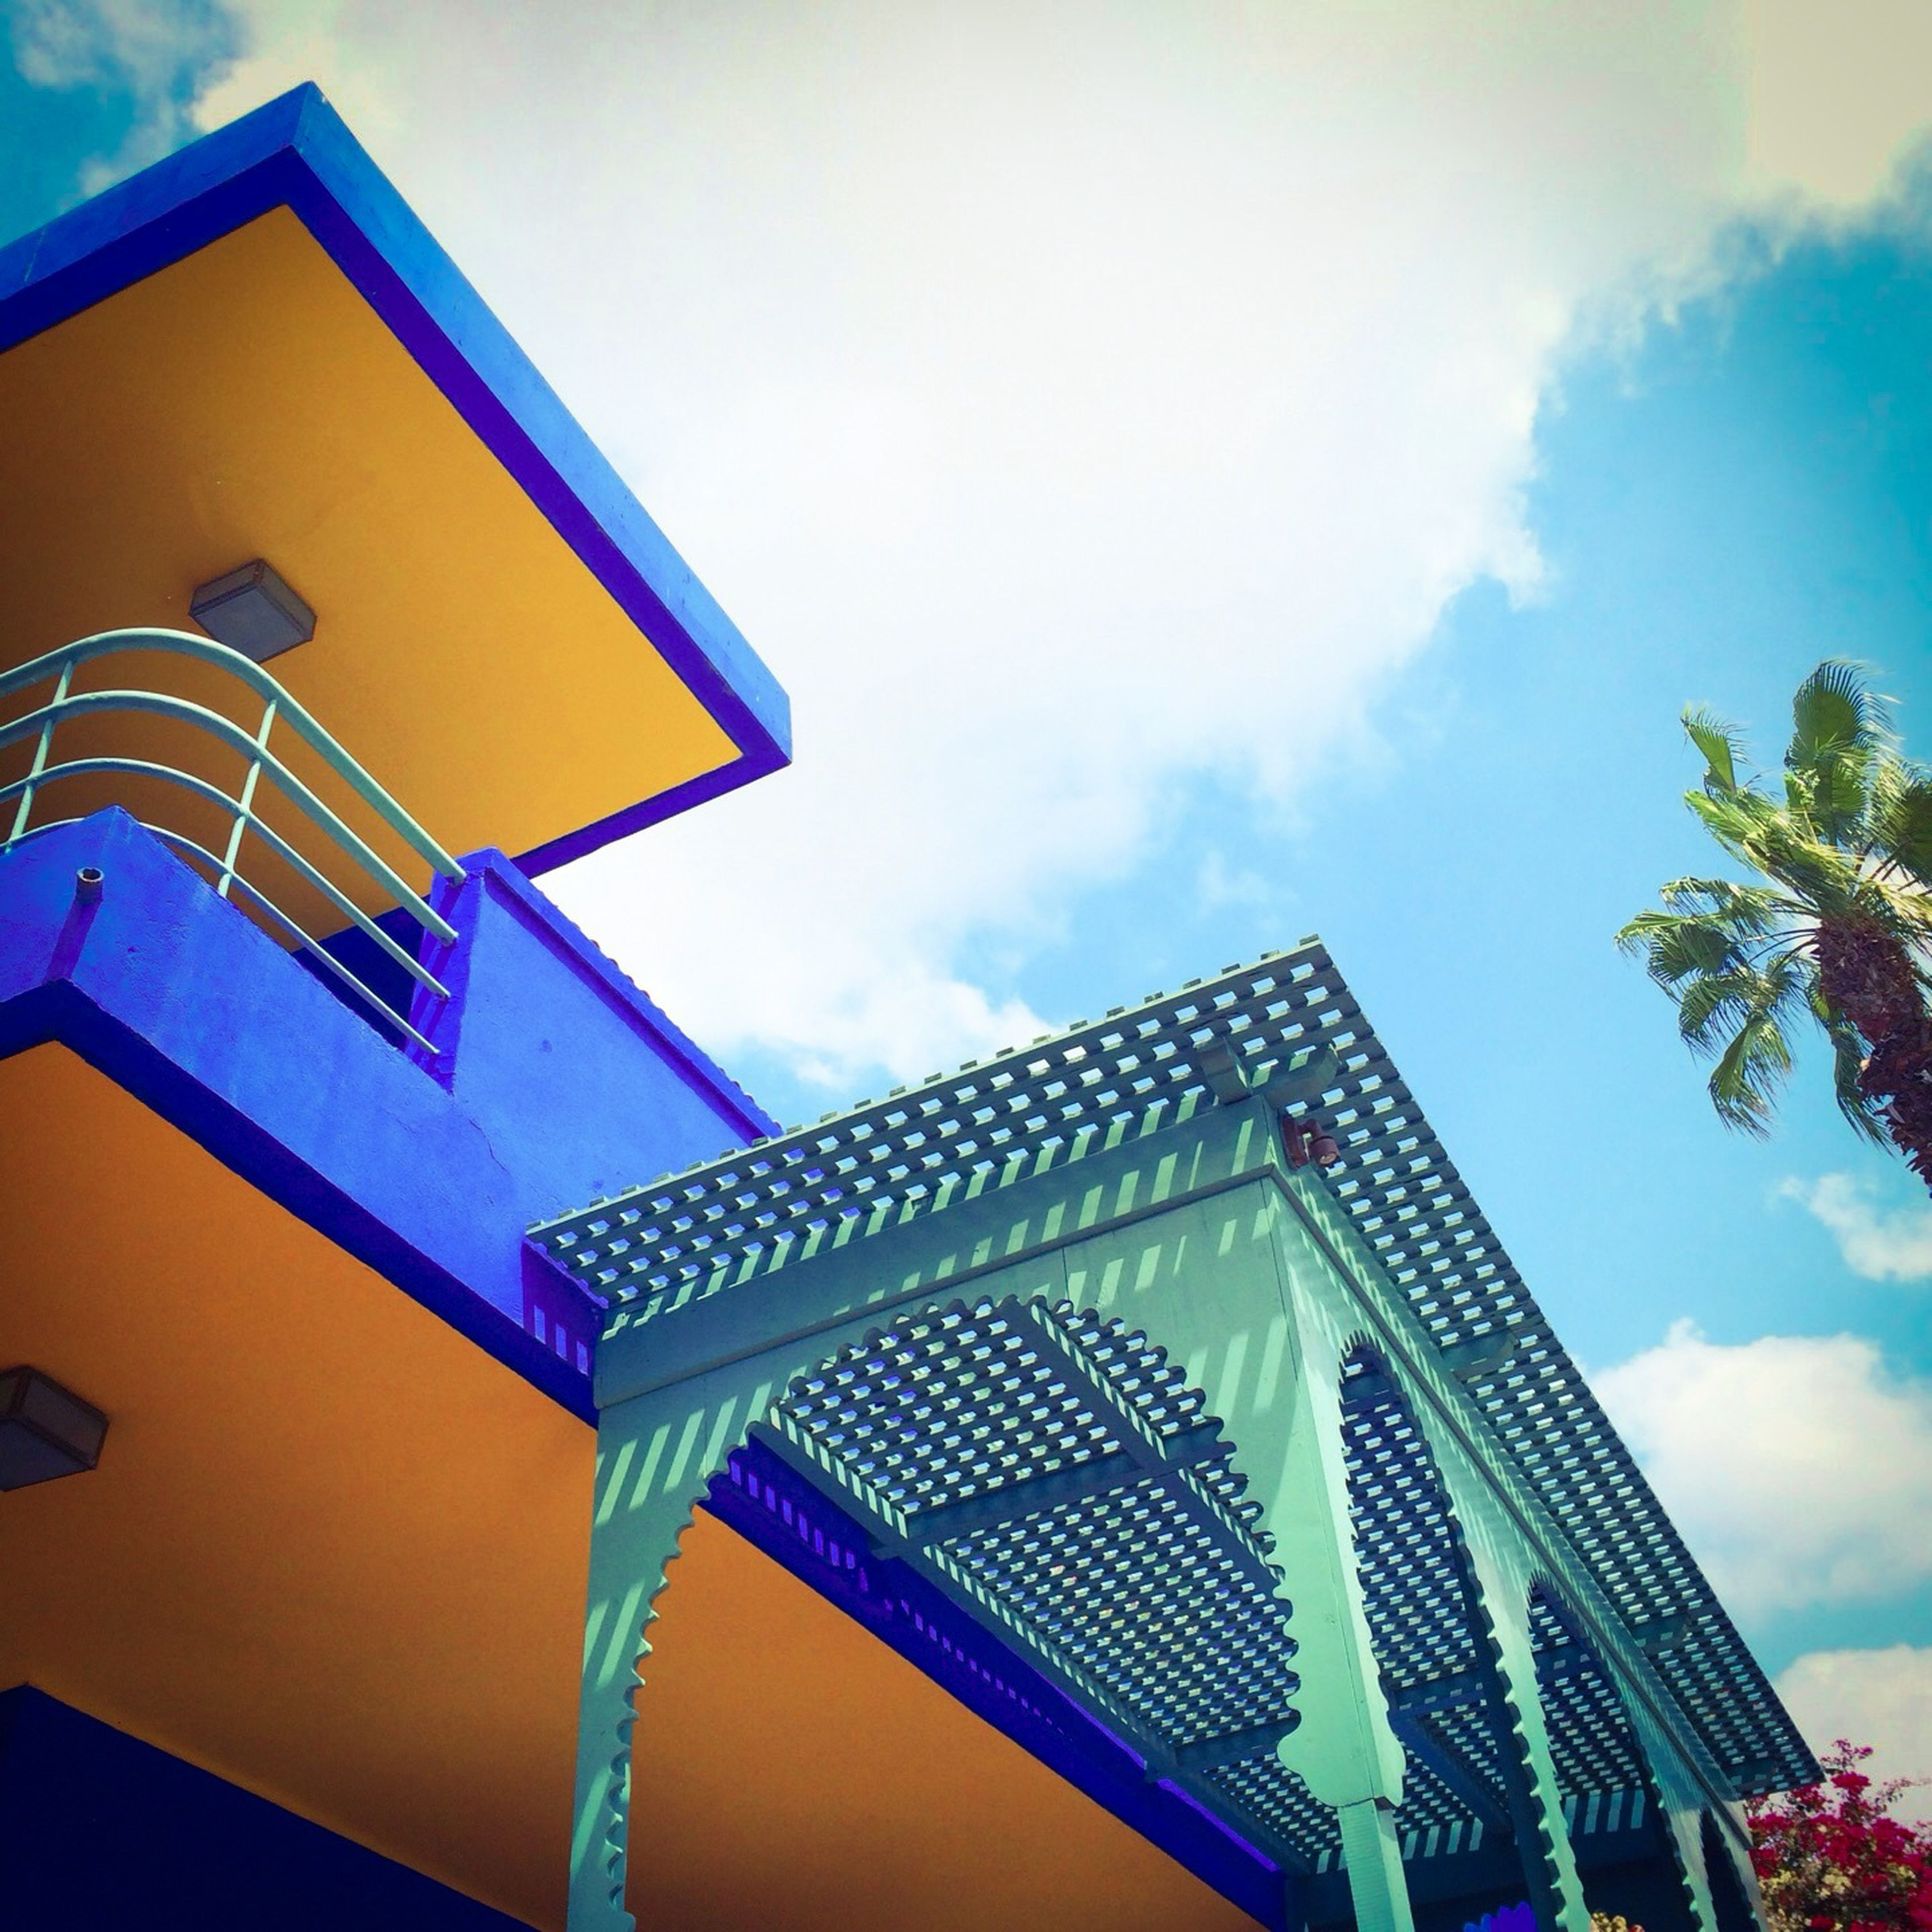 low angle view, architecture, built structure, building exterior, sky, blue, multi colored, cloud - sky, cloud, building, day, outdoors, high section, no people, pattern, art and craft, window, cloudy, house, design